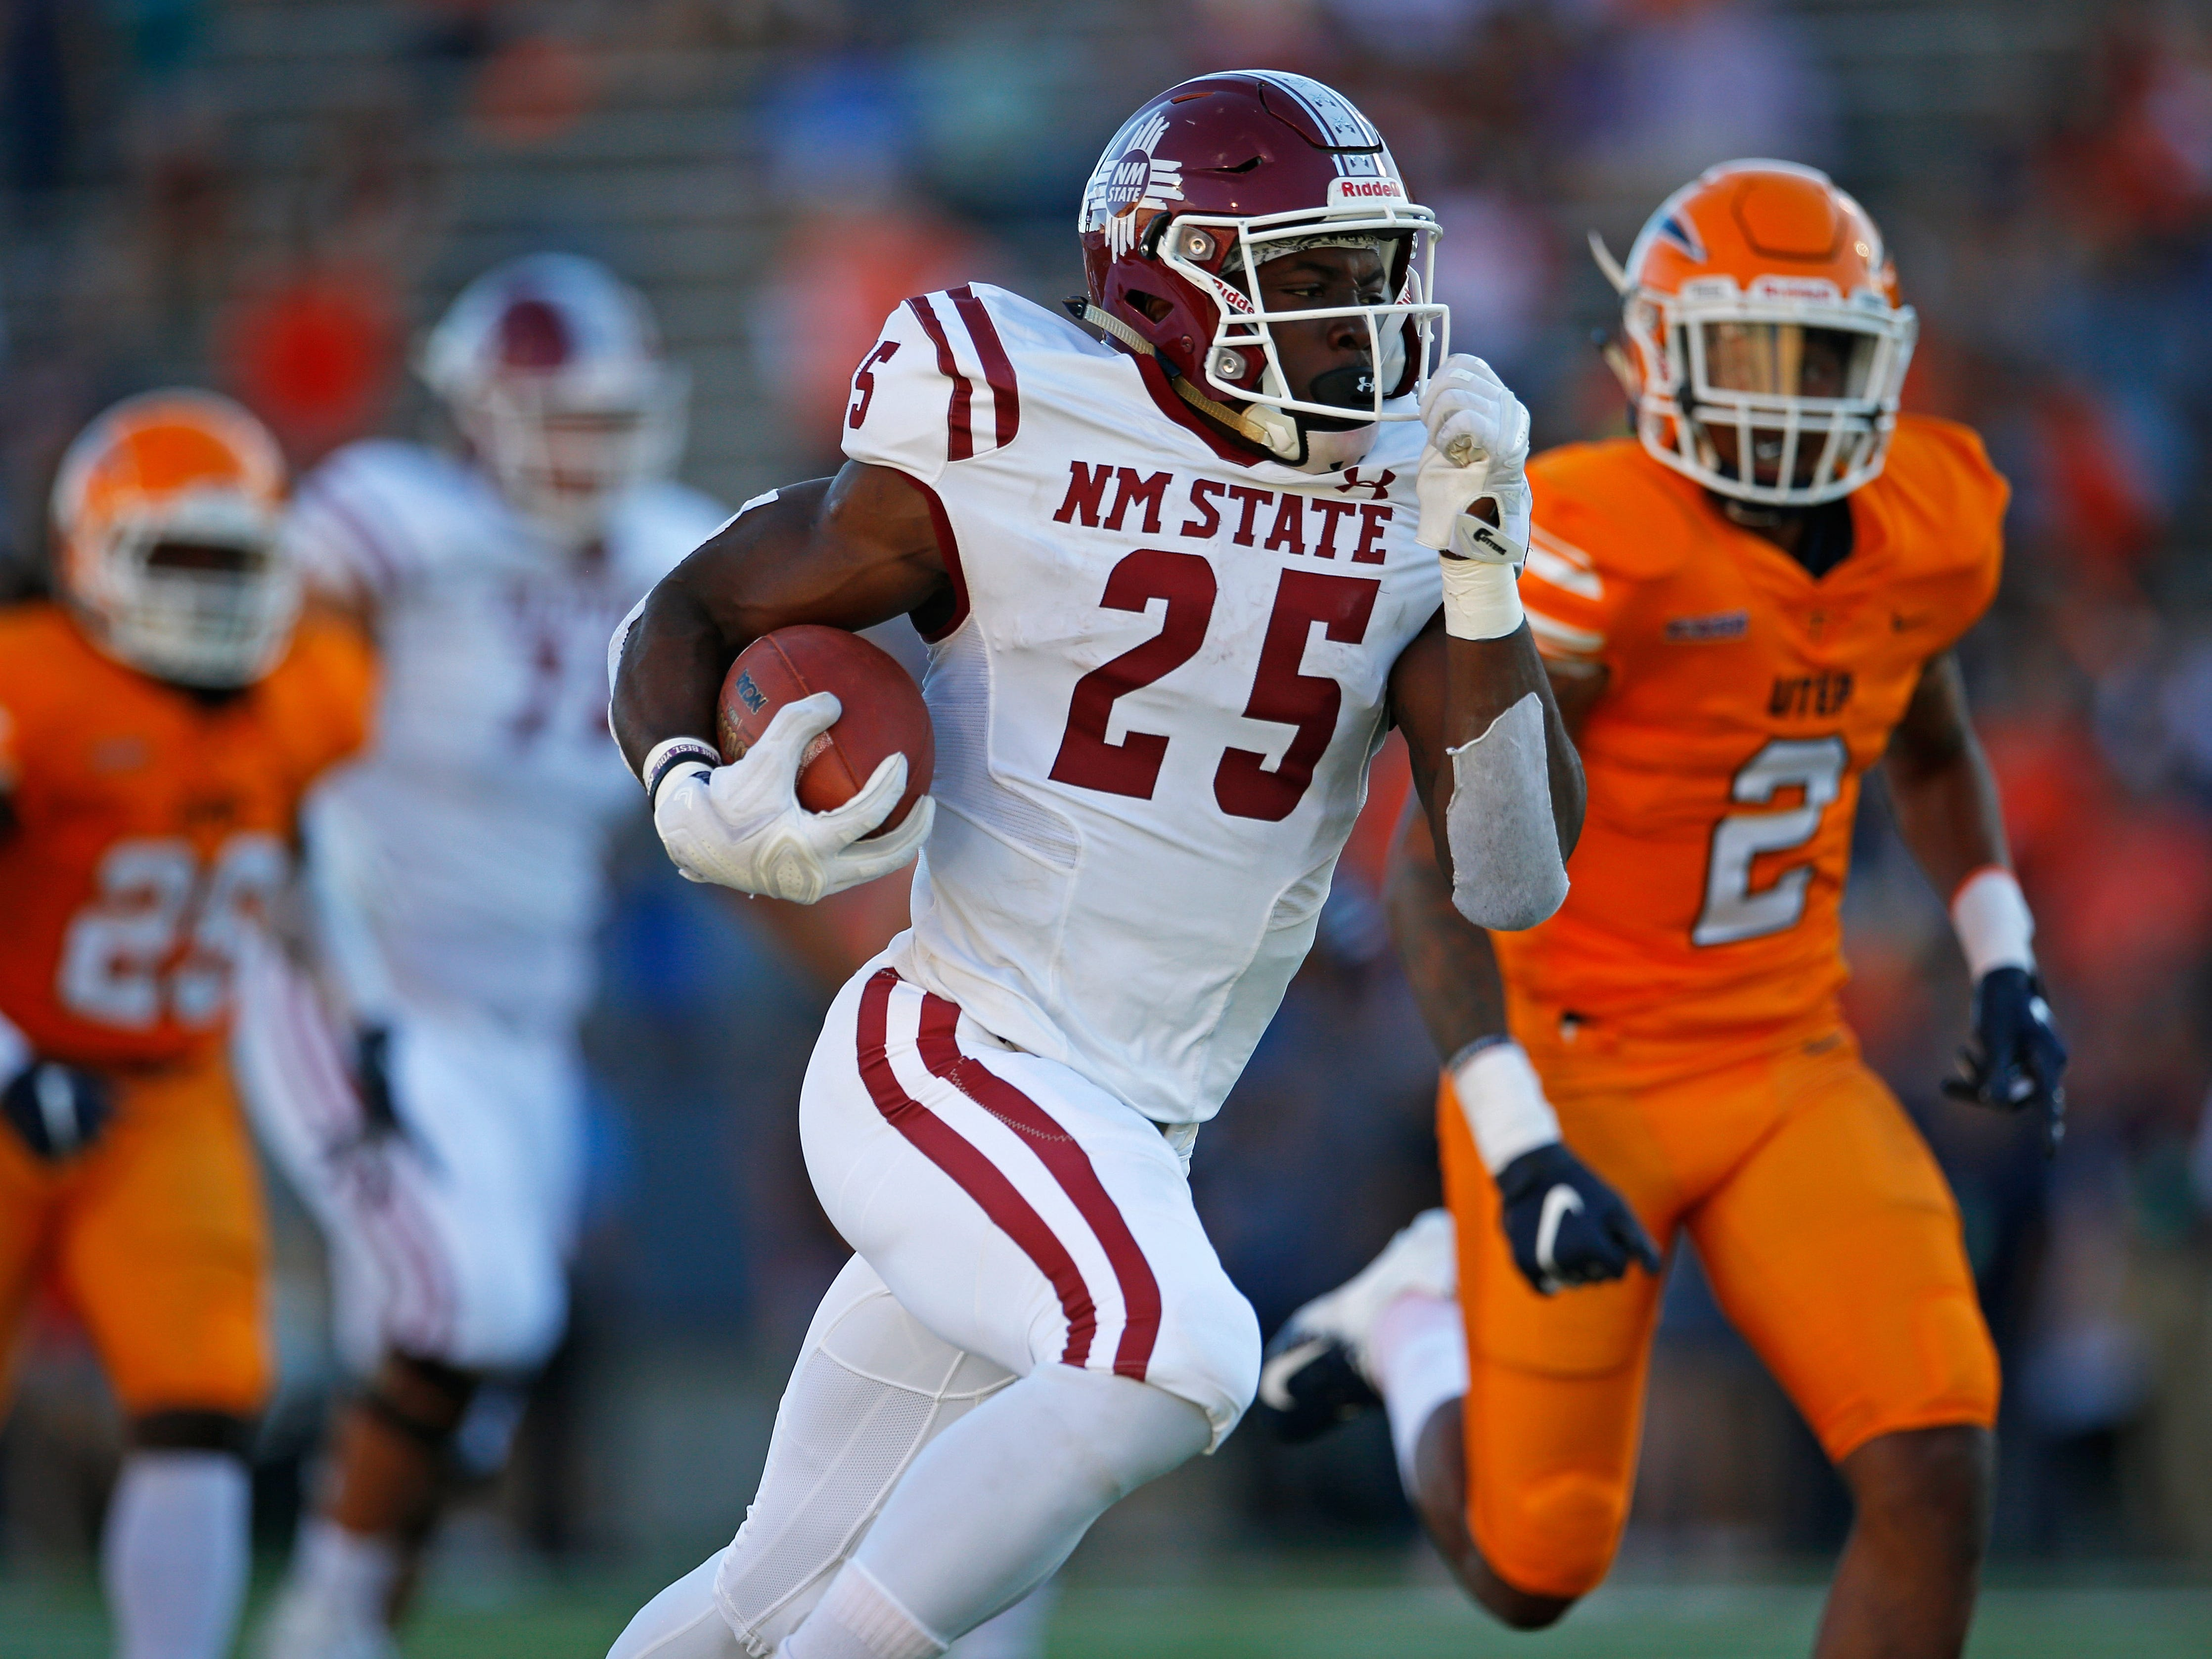 New Mexico State running back Christian Gibson has emerged as a physical presence in the Aggies backfield this season.